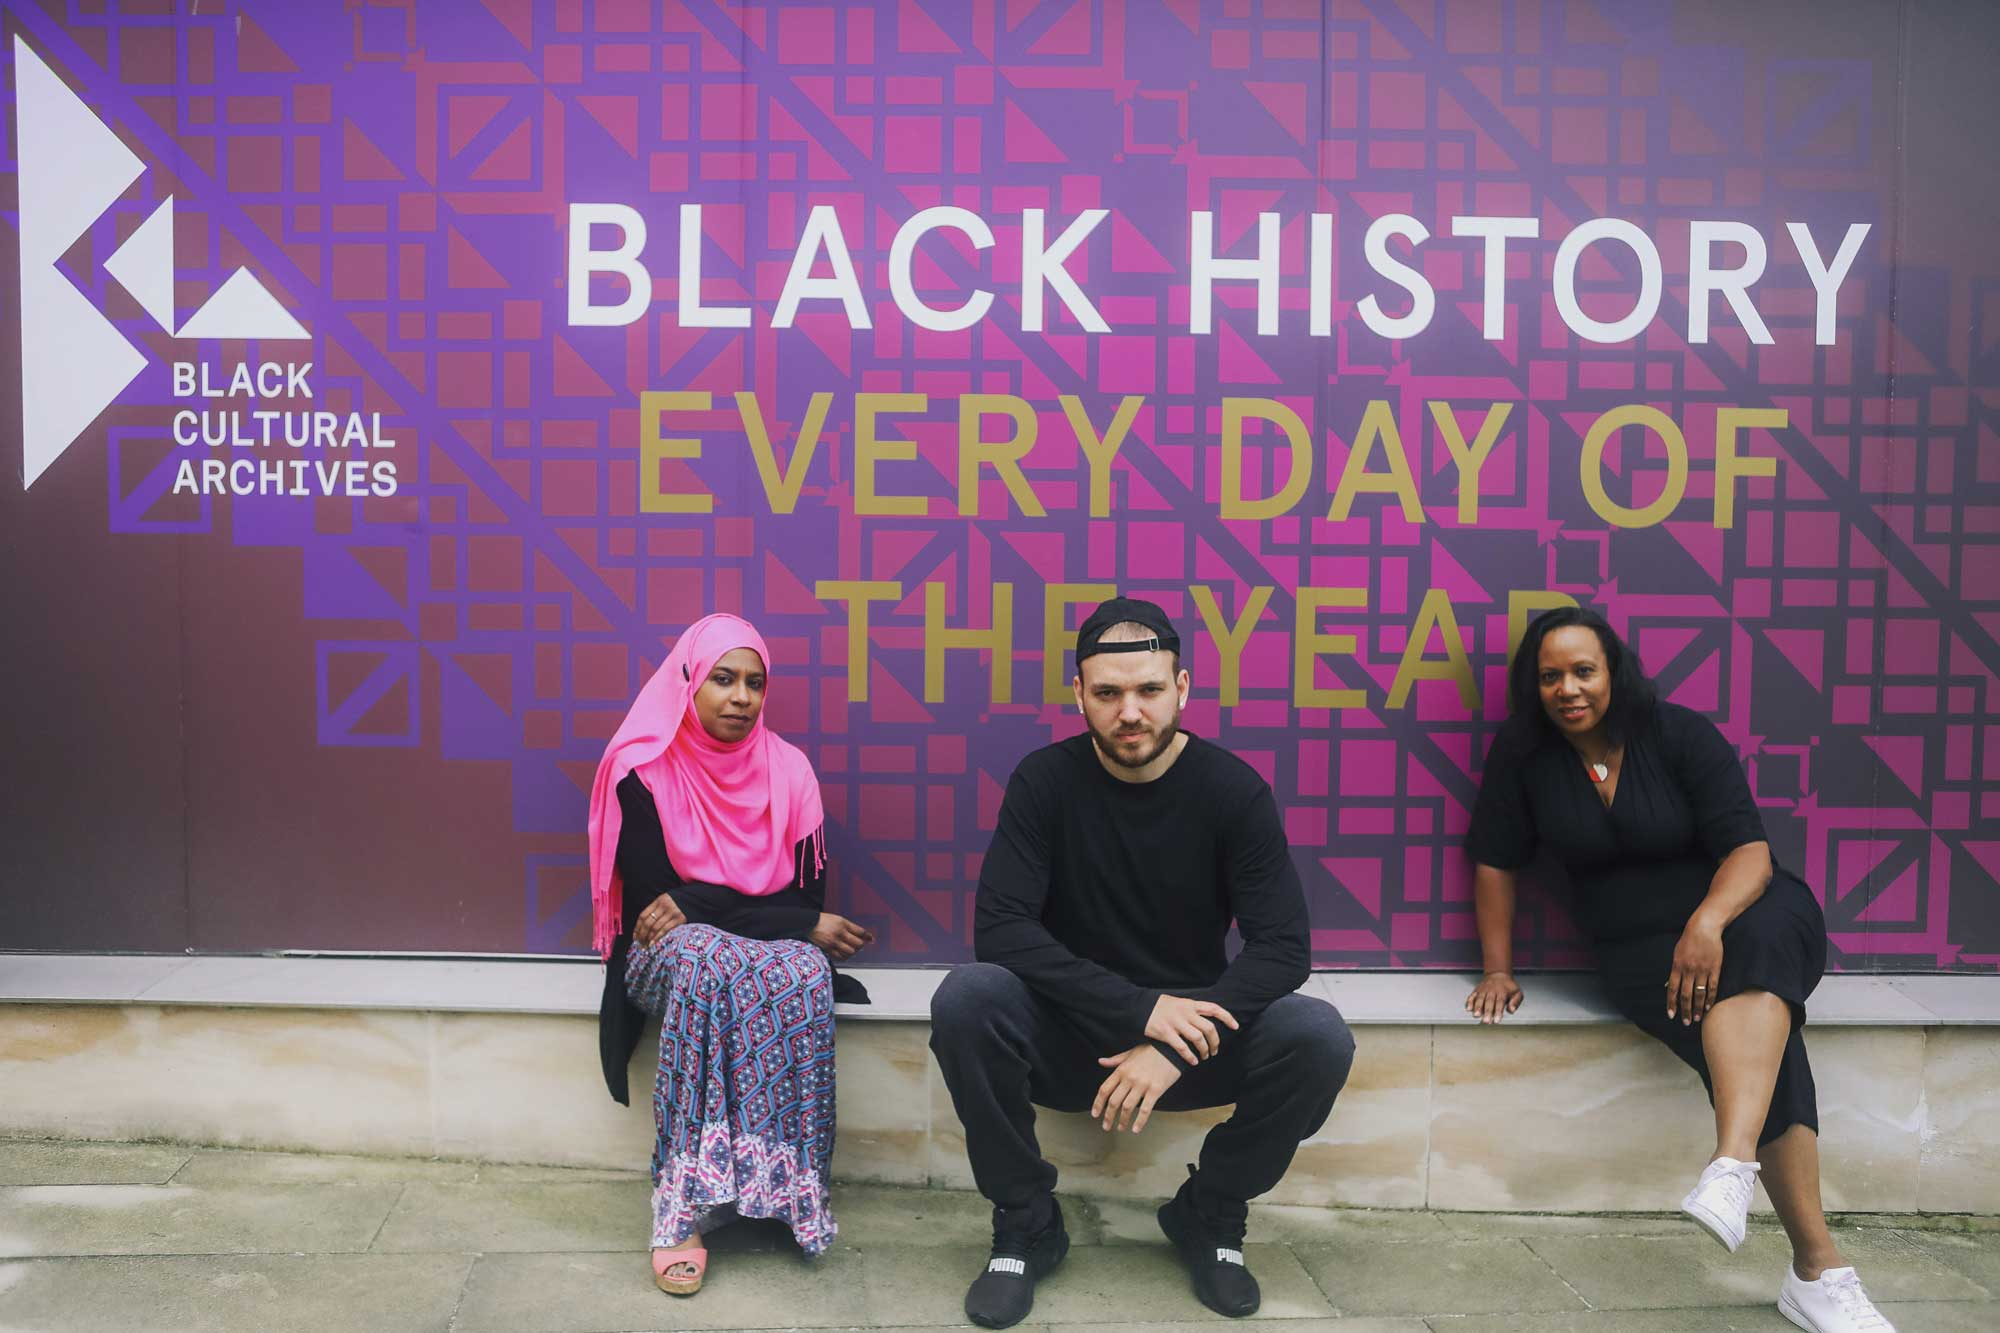 Founders of the Poetic Relief Fund outside Black Cultural Archives Brixton